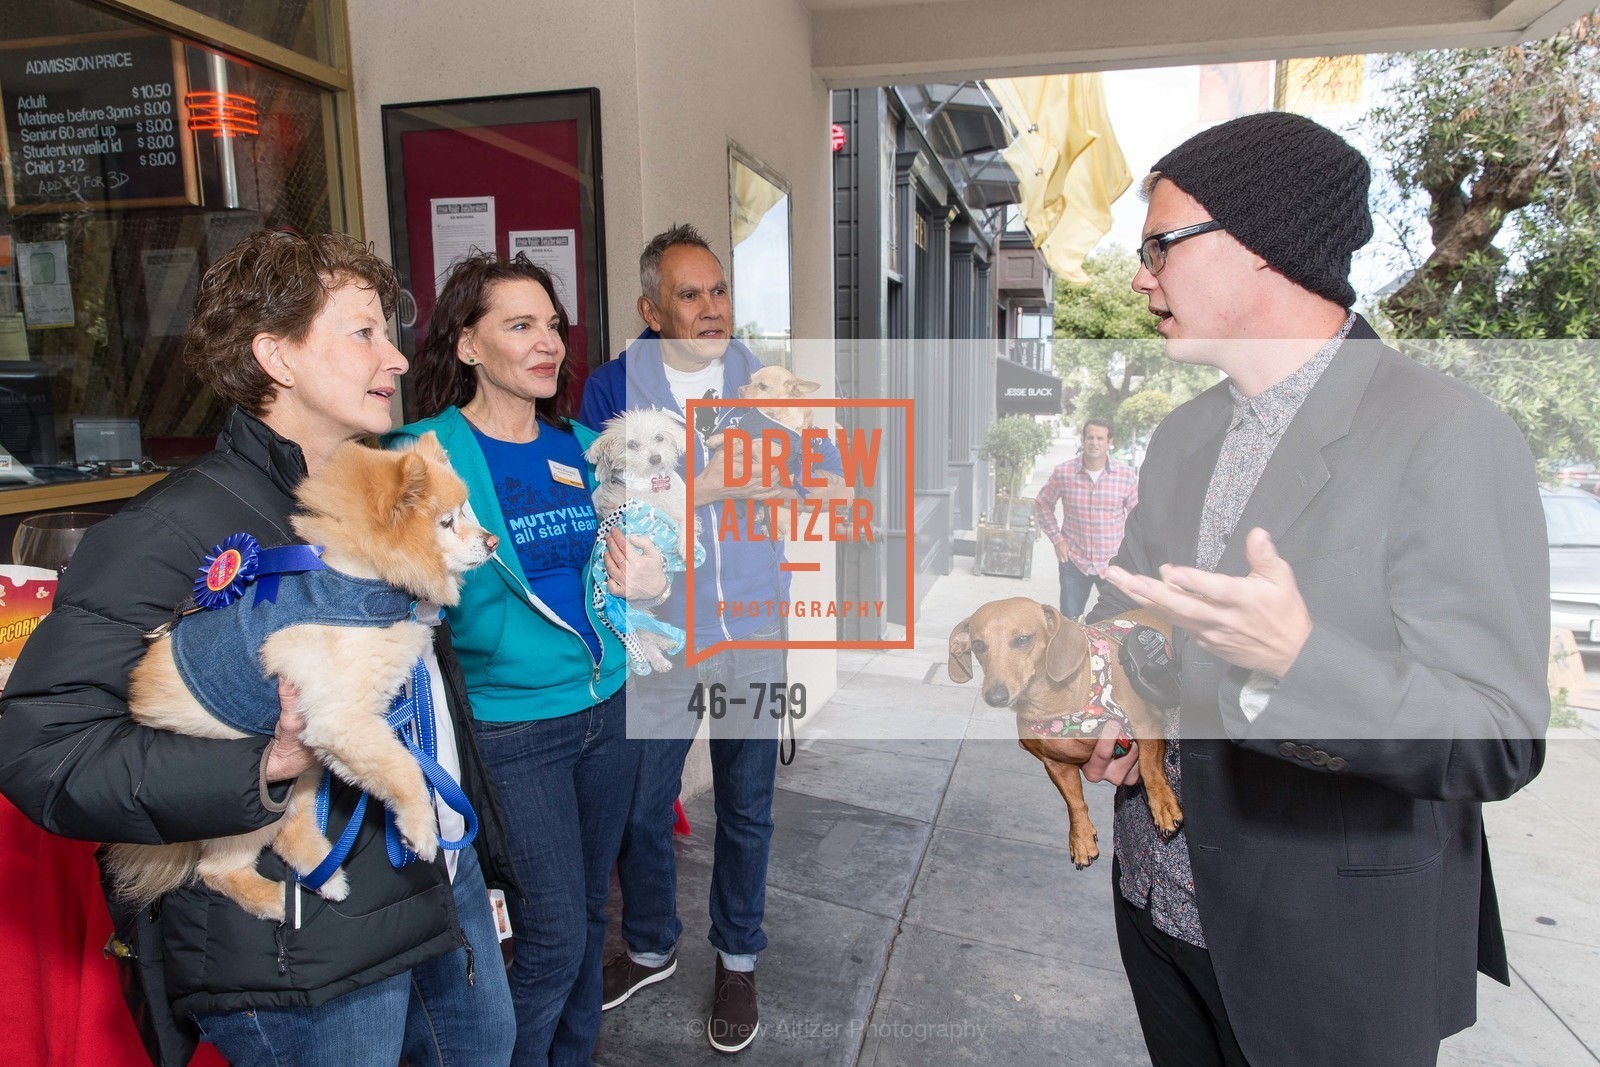 Patty Stanton, Sherri Franklin, Noelson Bloncourt, Austin Anderson, WEINER DOG, The Movie, Screening, The Vogue Theater. 3290 Sacramento St, June 1st, 2015,Drew Altizer, Drew Altizer Photography, full-service agency, private events, San Francisco photographer, photographer california